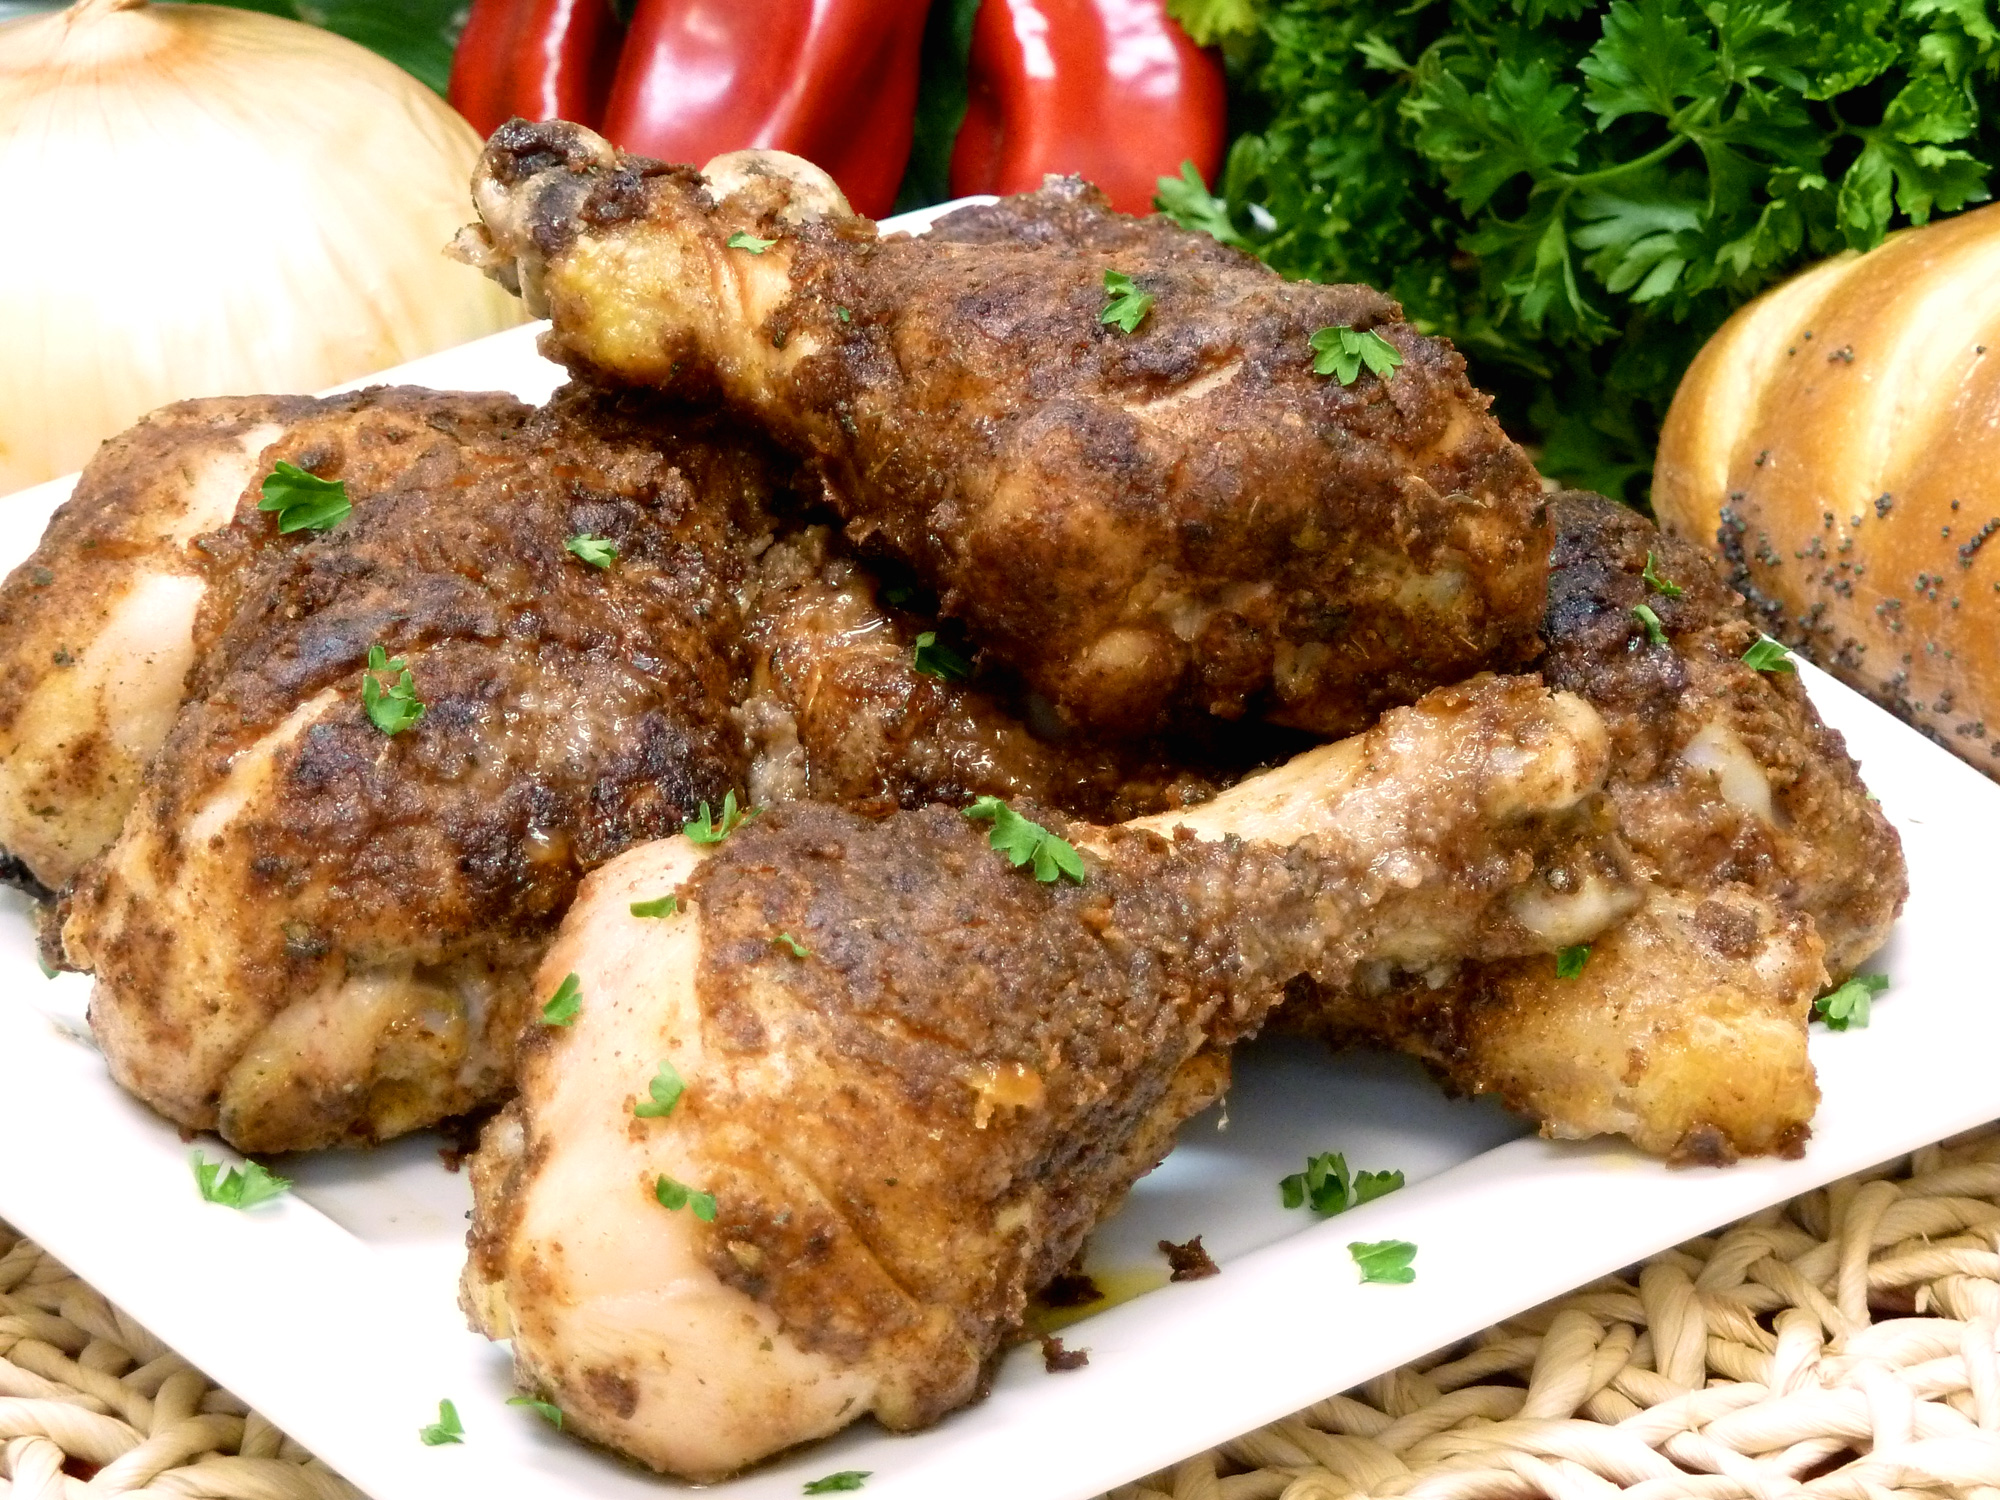 14 herbs and spices make spicy chicken legs better than KFC.